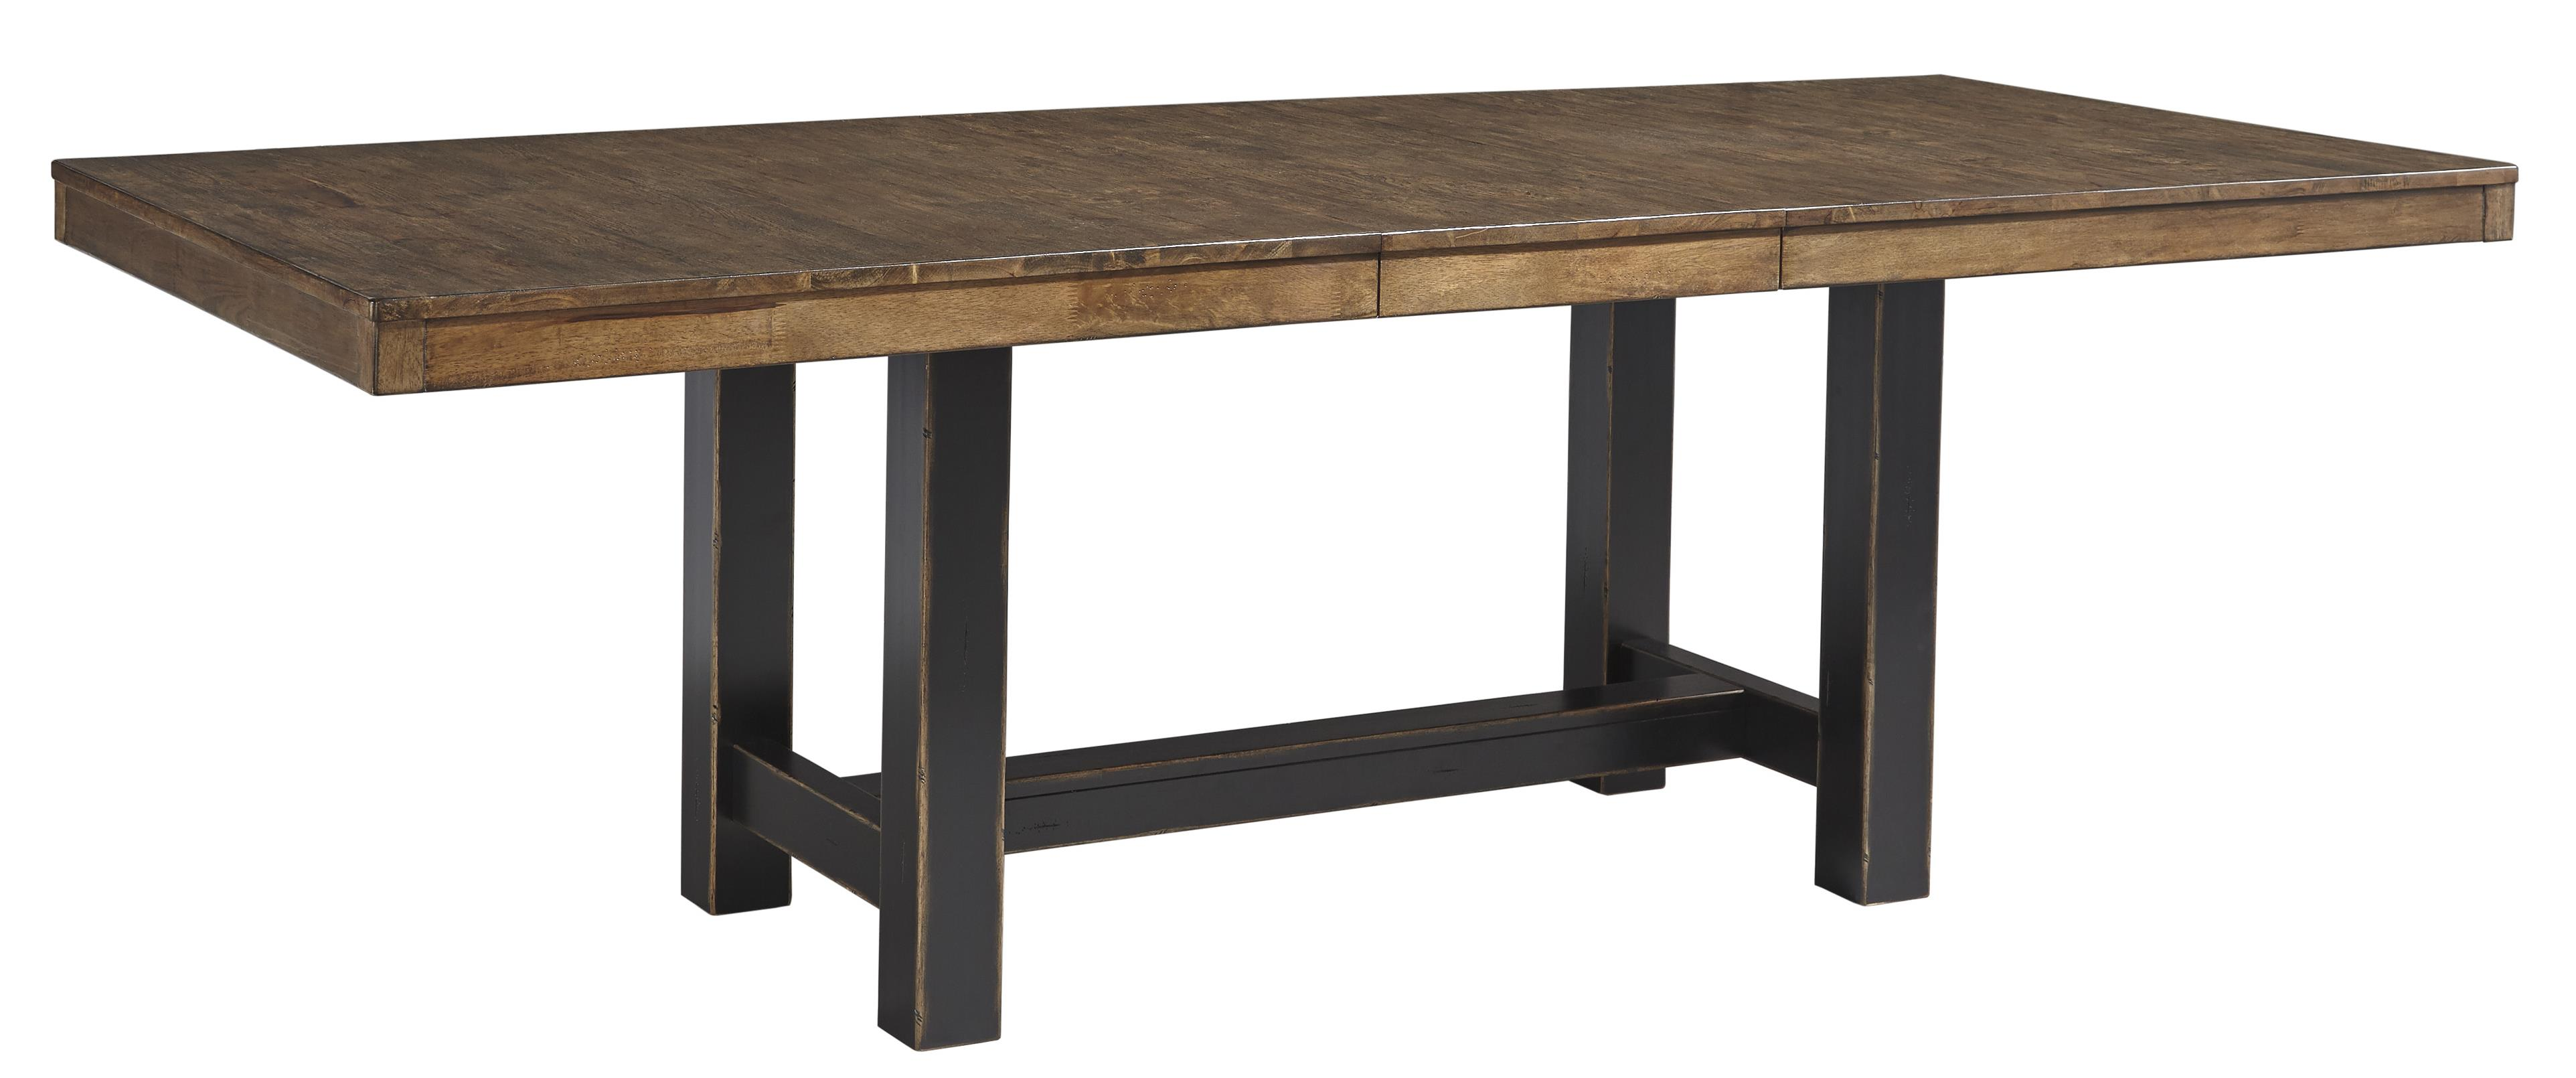 Signature Design by Ashley Emerfield Rectangular Dining Room Extension Table - Item Number: D563-35